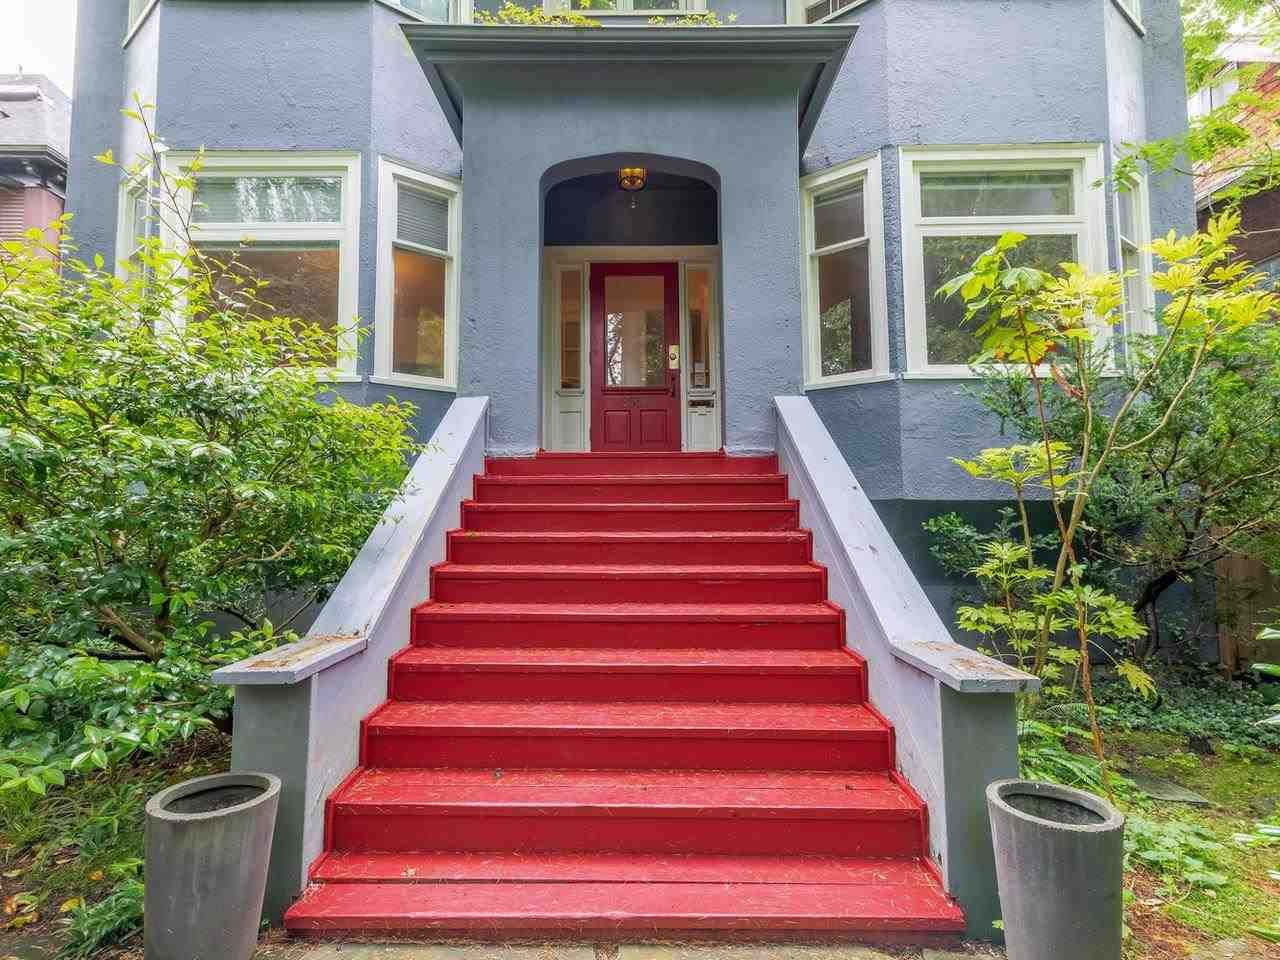 Photo 15: Photos: 2556 W 2ND Avenue in Vancouver: Kitsilano House for sale (Vancouver West)  : MLS®# R2593228